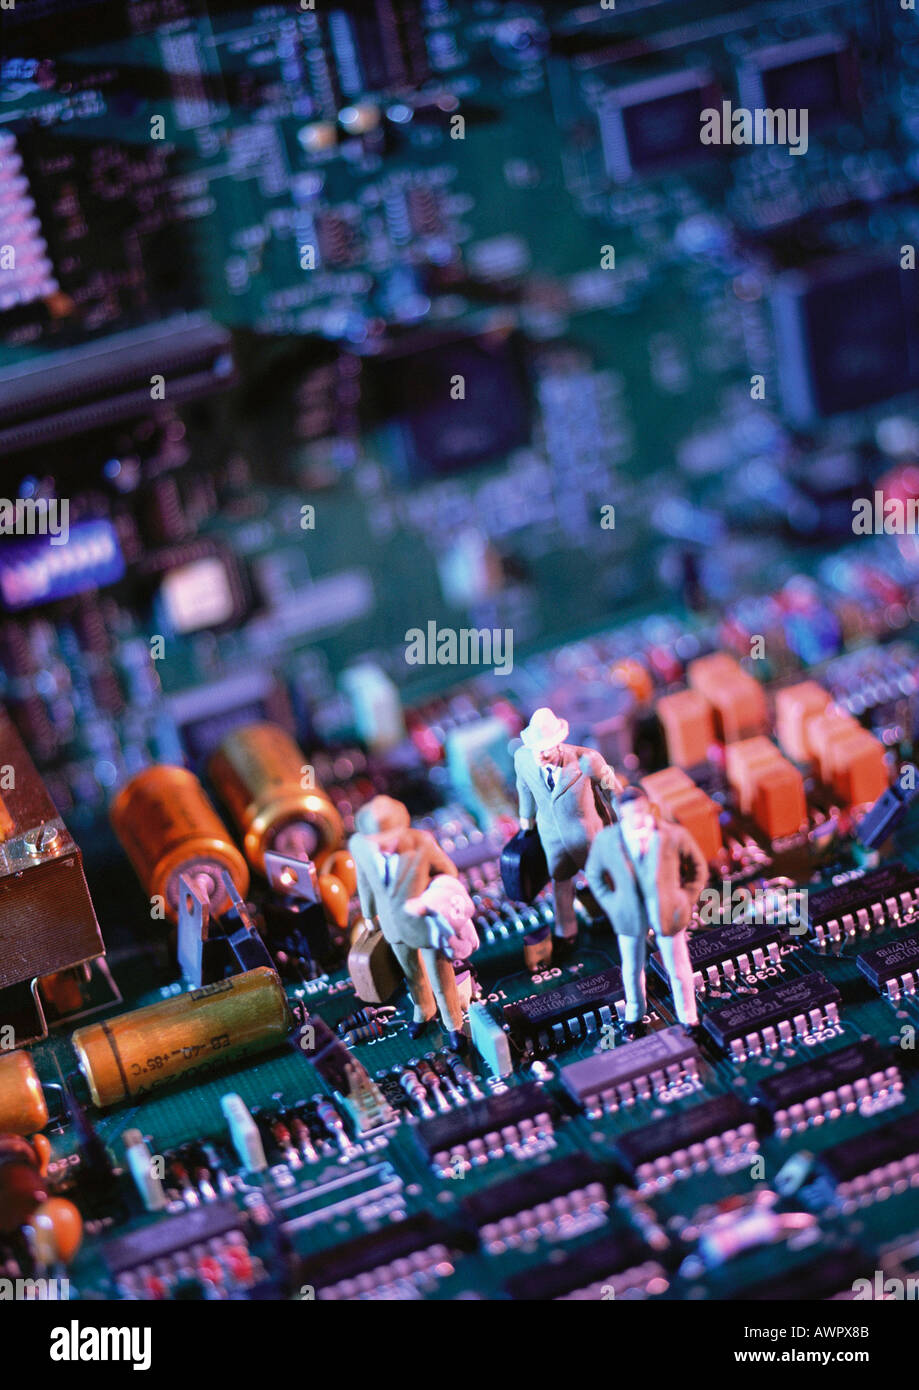 Toy figures on computer circuit board, close-up - Stock Image